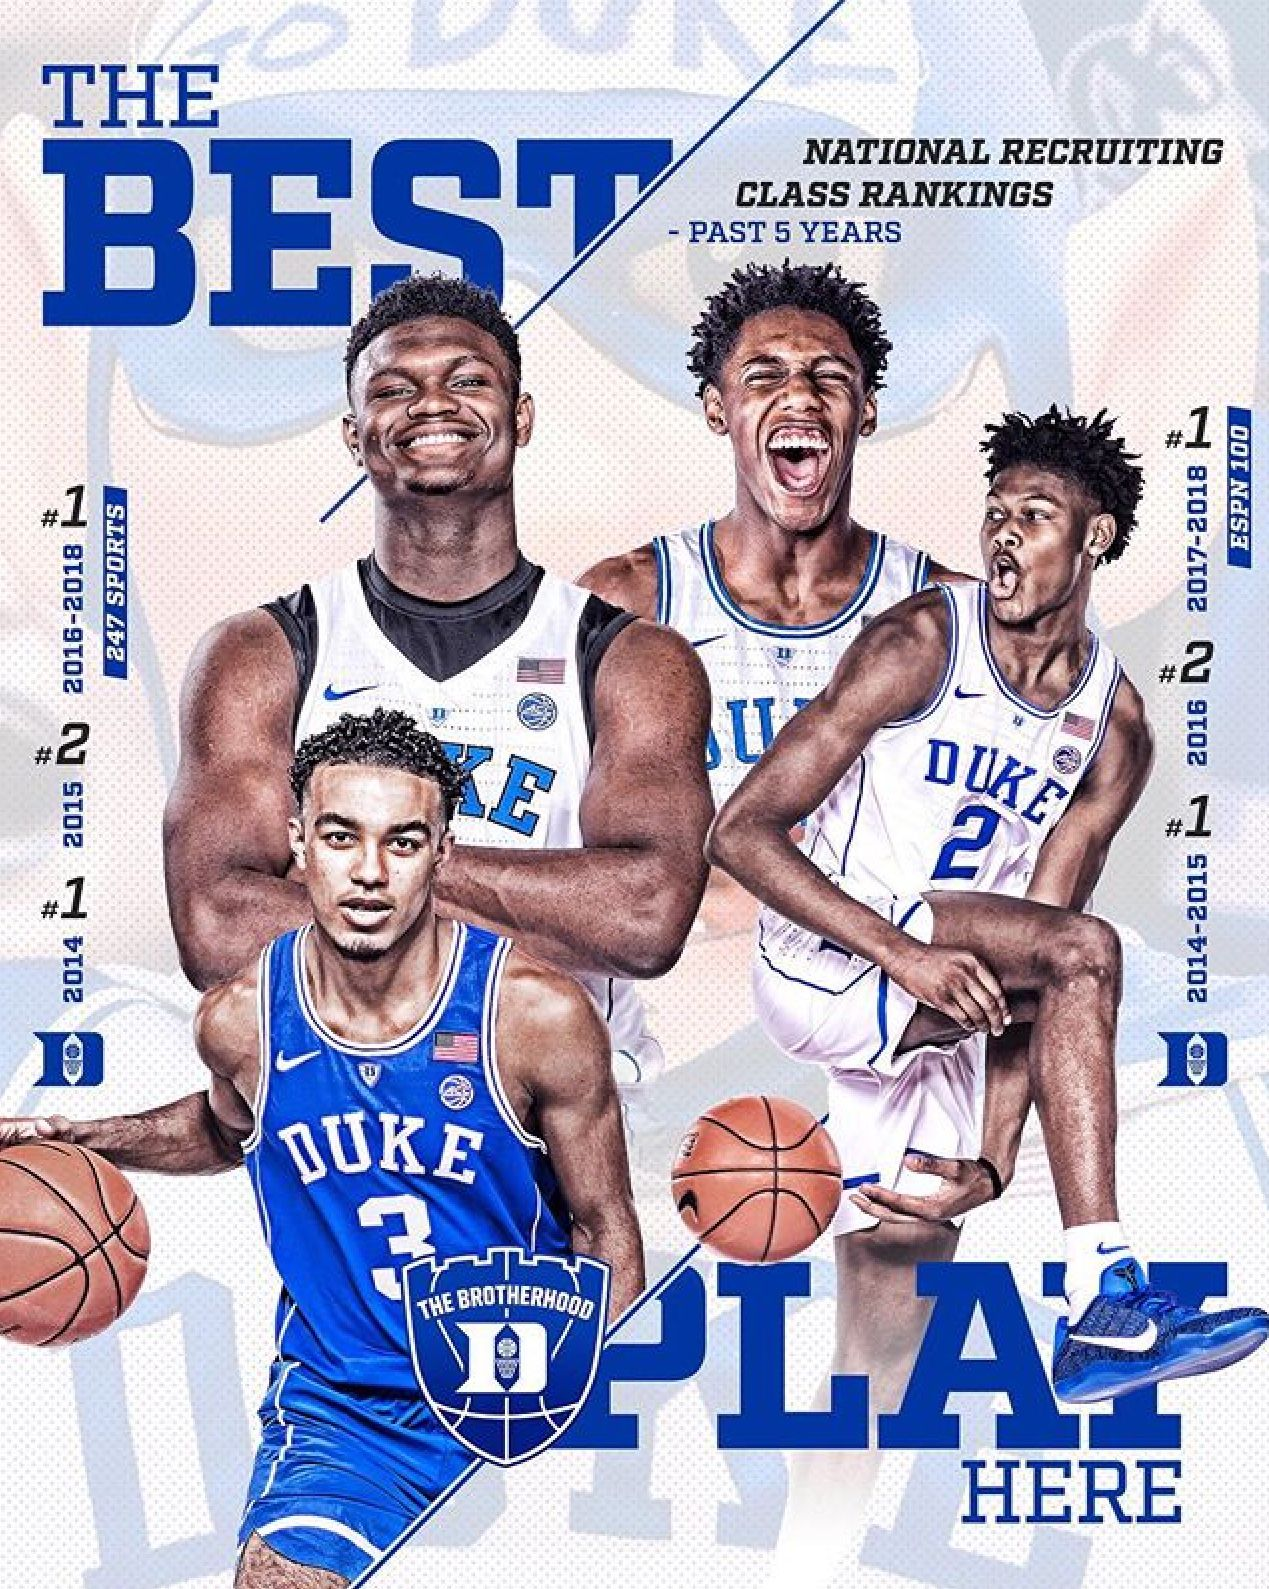 Getting it done! Duke blue devils basketball, Duke